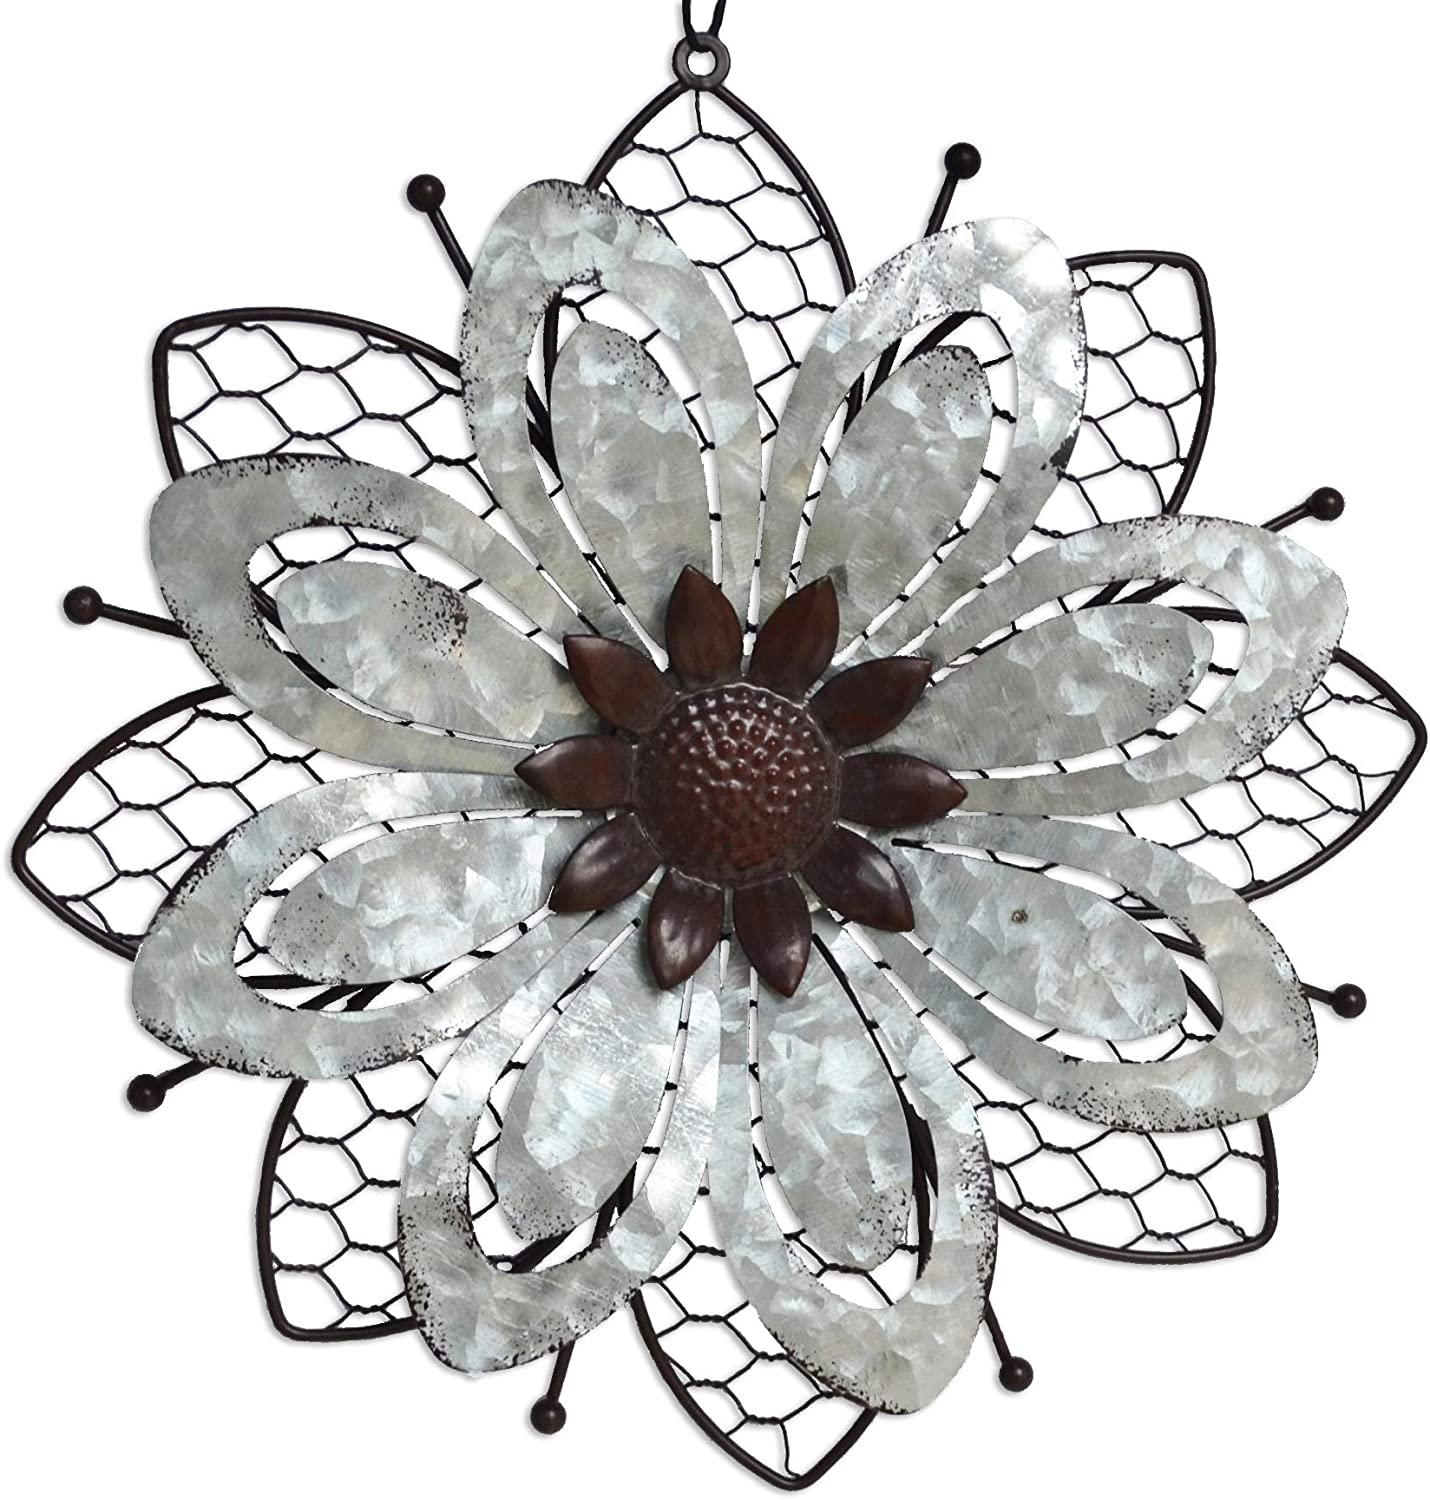 GIFTME 5 Galvanized Flower Wall Decor Indoor or Outdoor Metal Wall Art-1pc